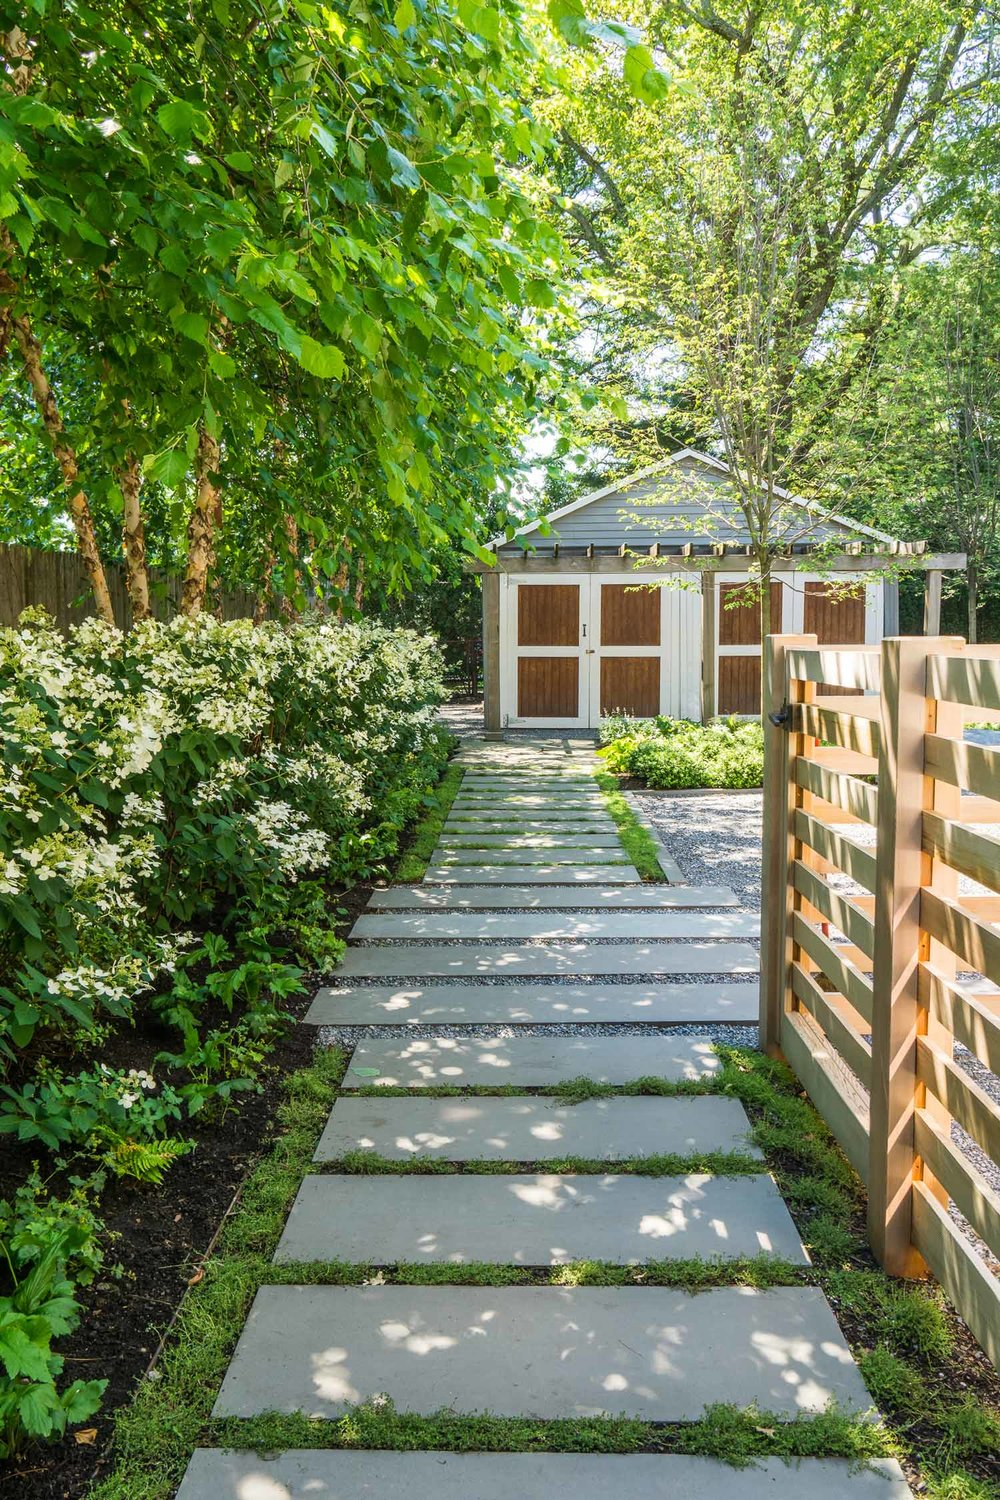 Residential Landscape Architecture, Cambridge, Massachusetts